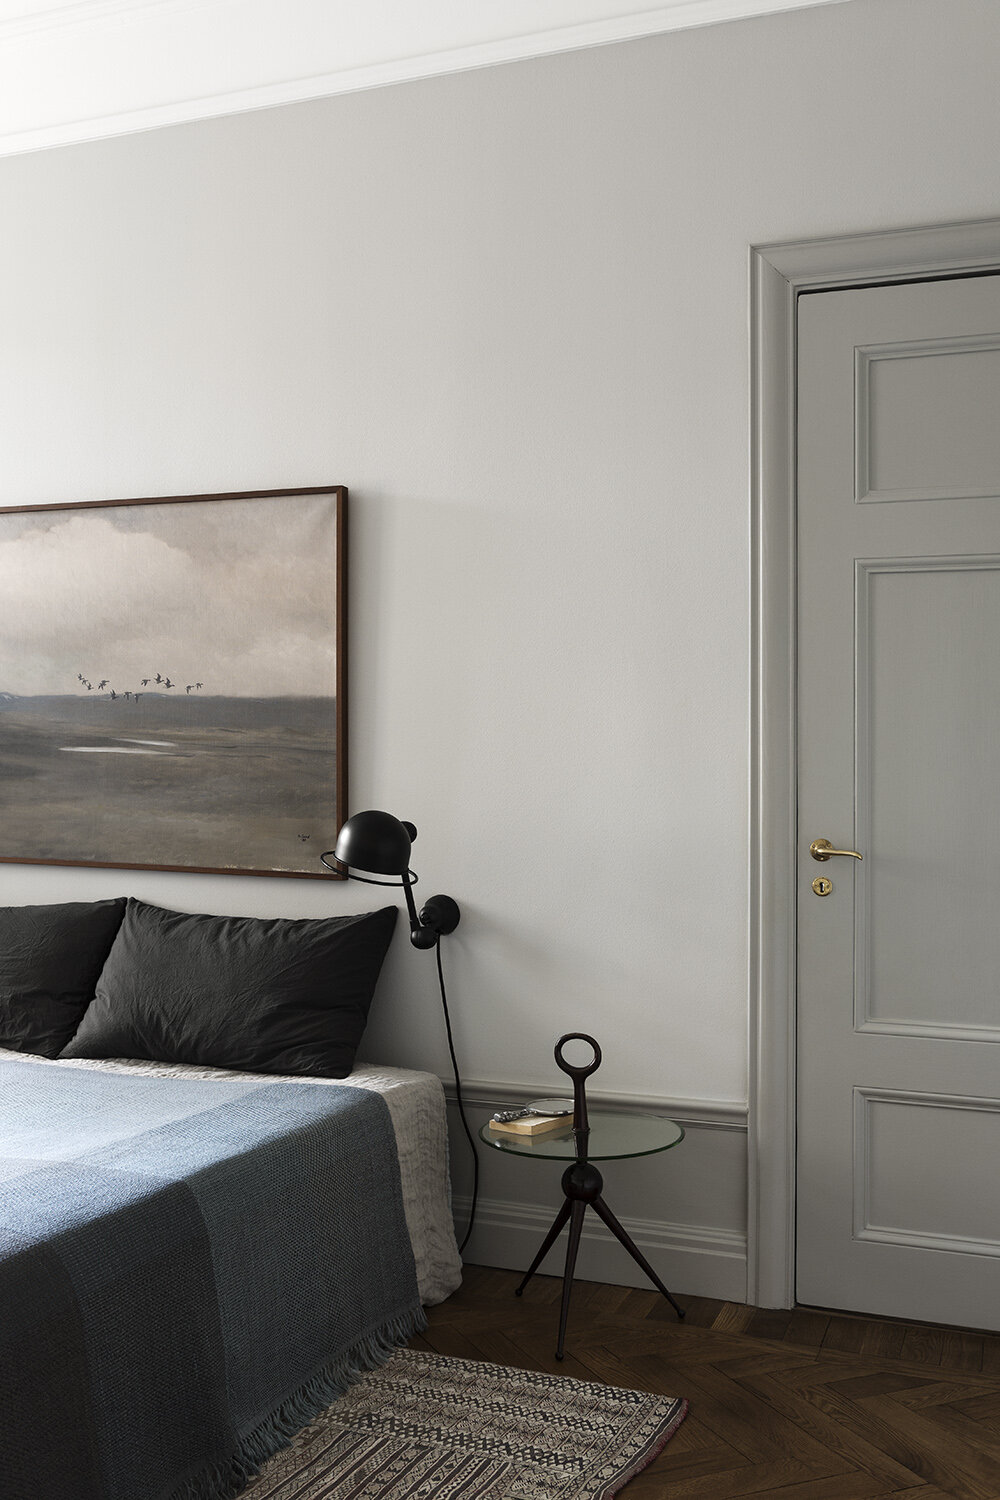 The Nordroom - A Stylish Apartment Designed by Joanna Lavén